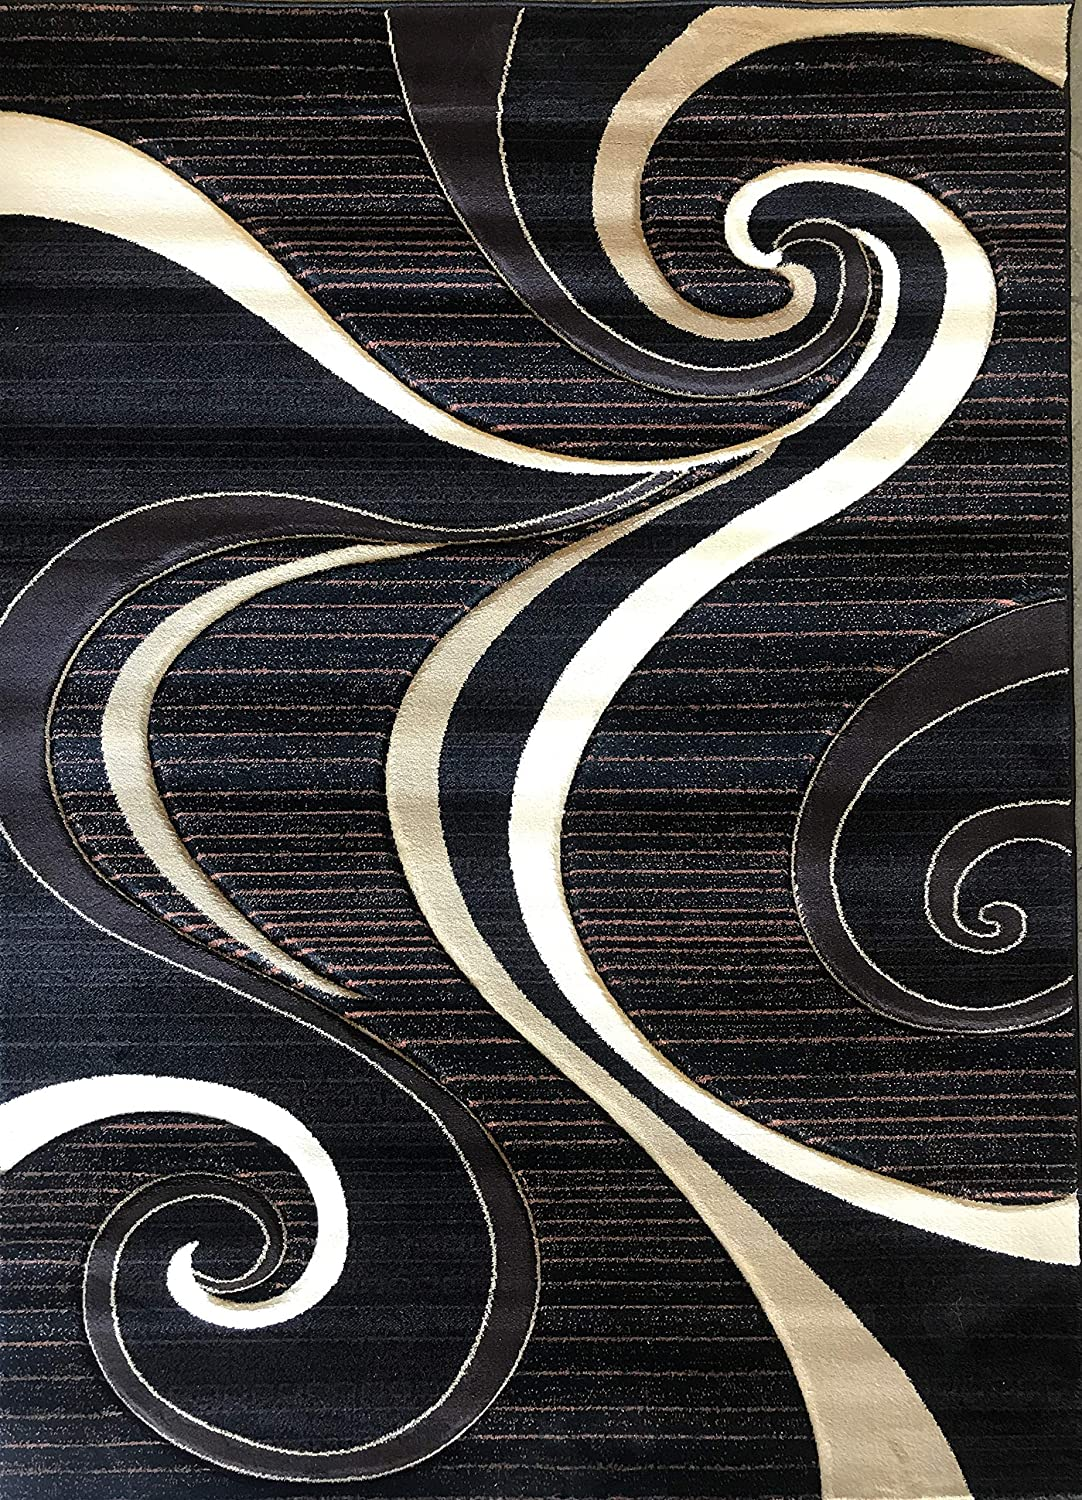 Contempo Modern Door Mat Contemporary Area Rug Purple & Black Abstract Swirl Design 341 (2 Feet X 3 Feet 4 inch) #341